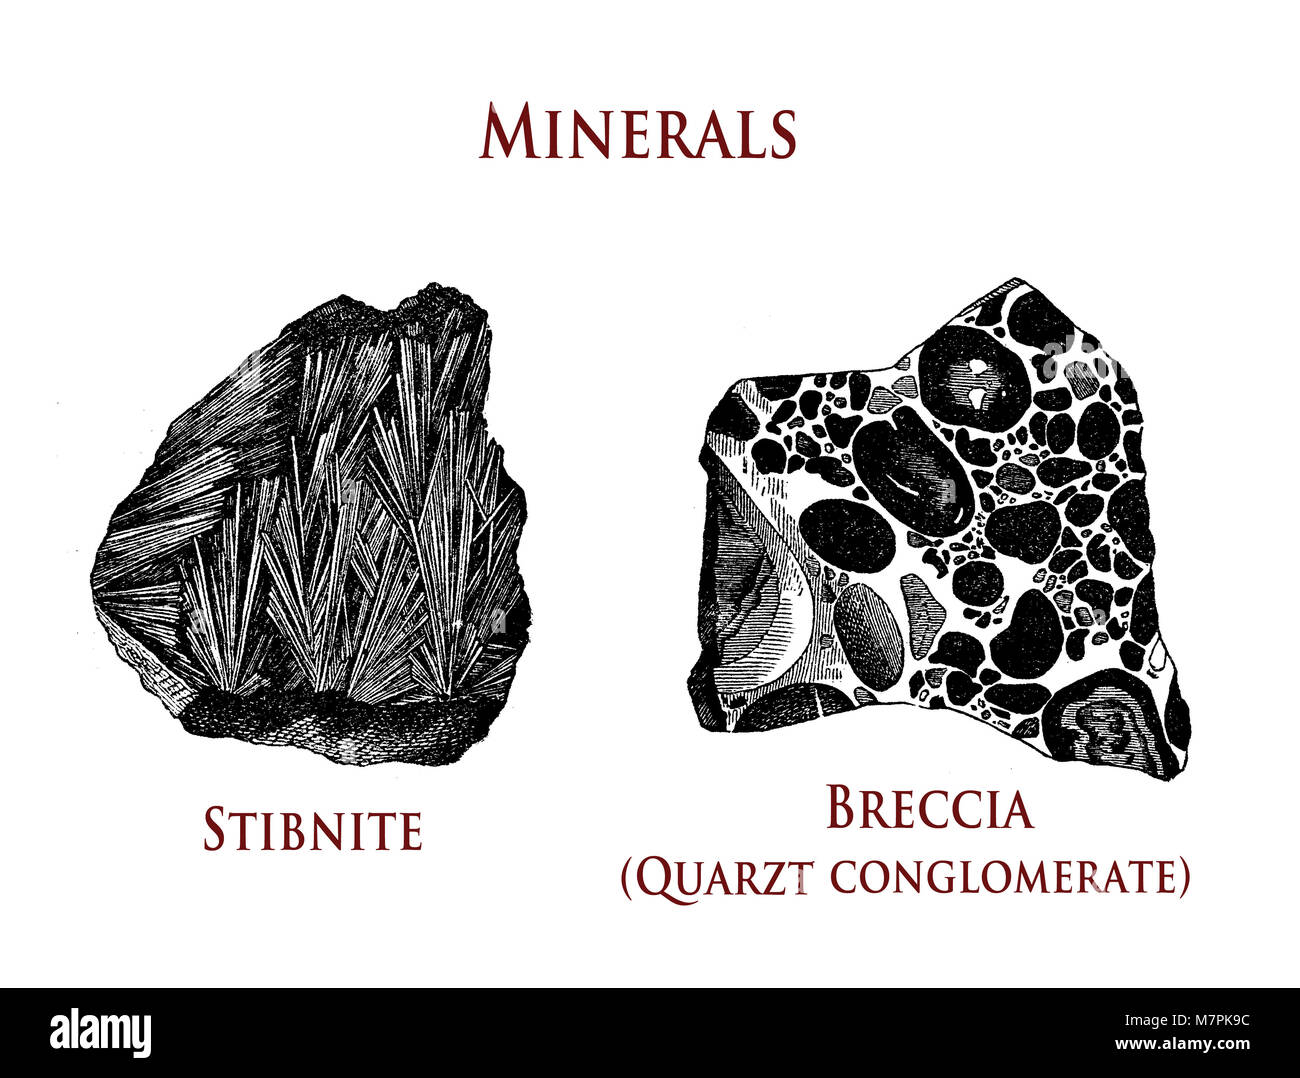 vintage illustration of minerals: stibnite and breccia - Stock Image